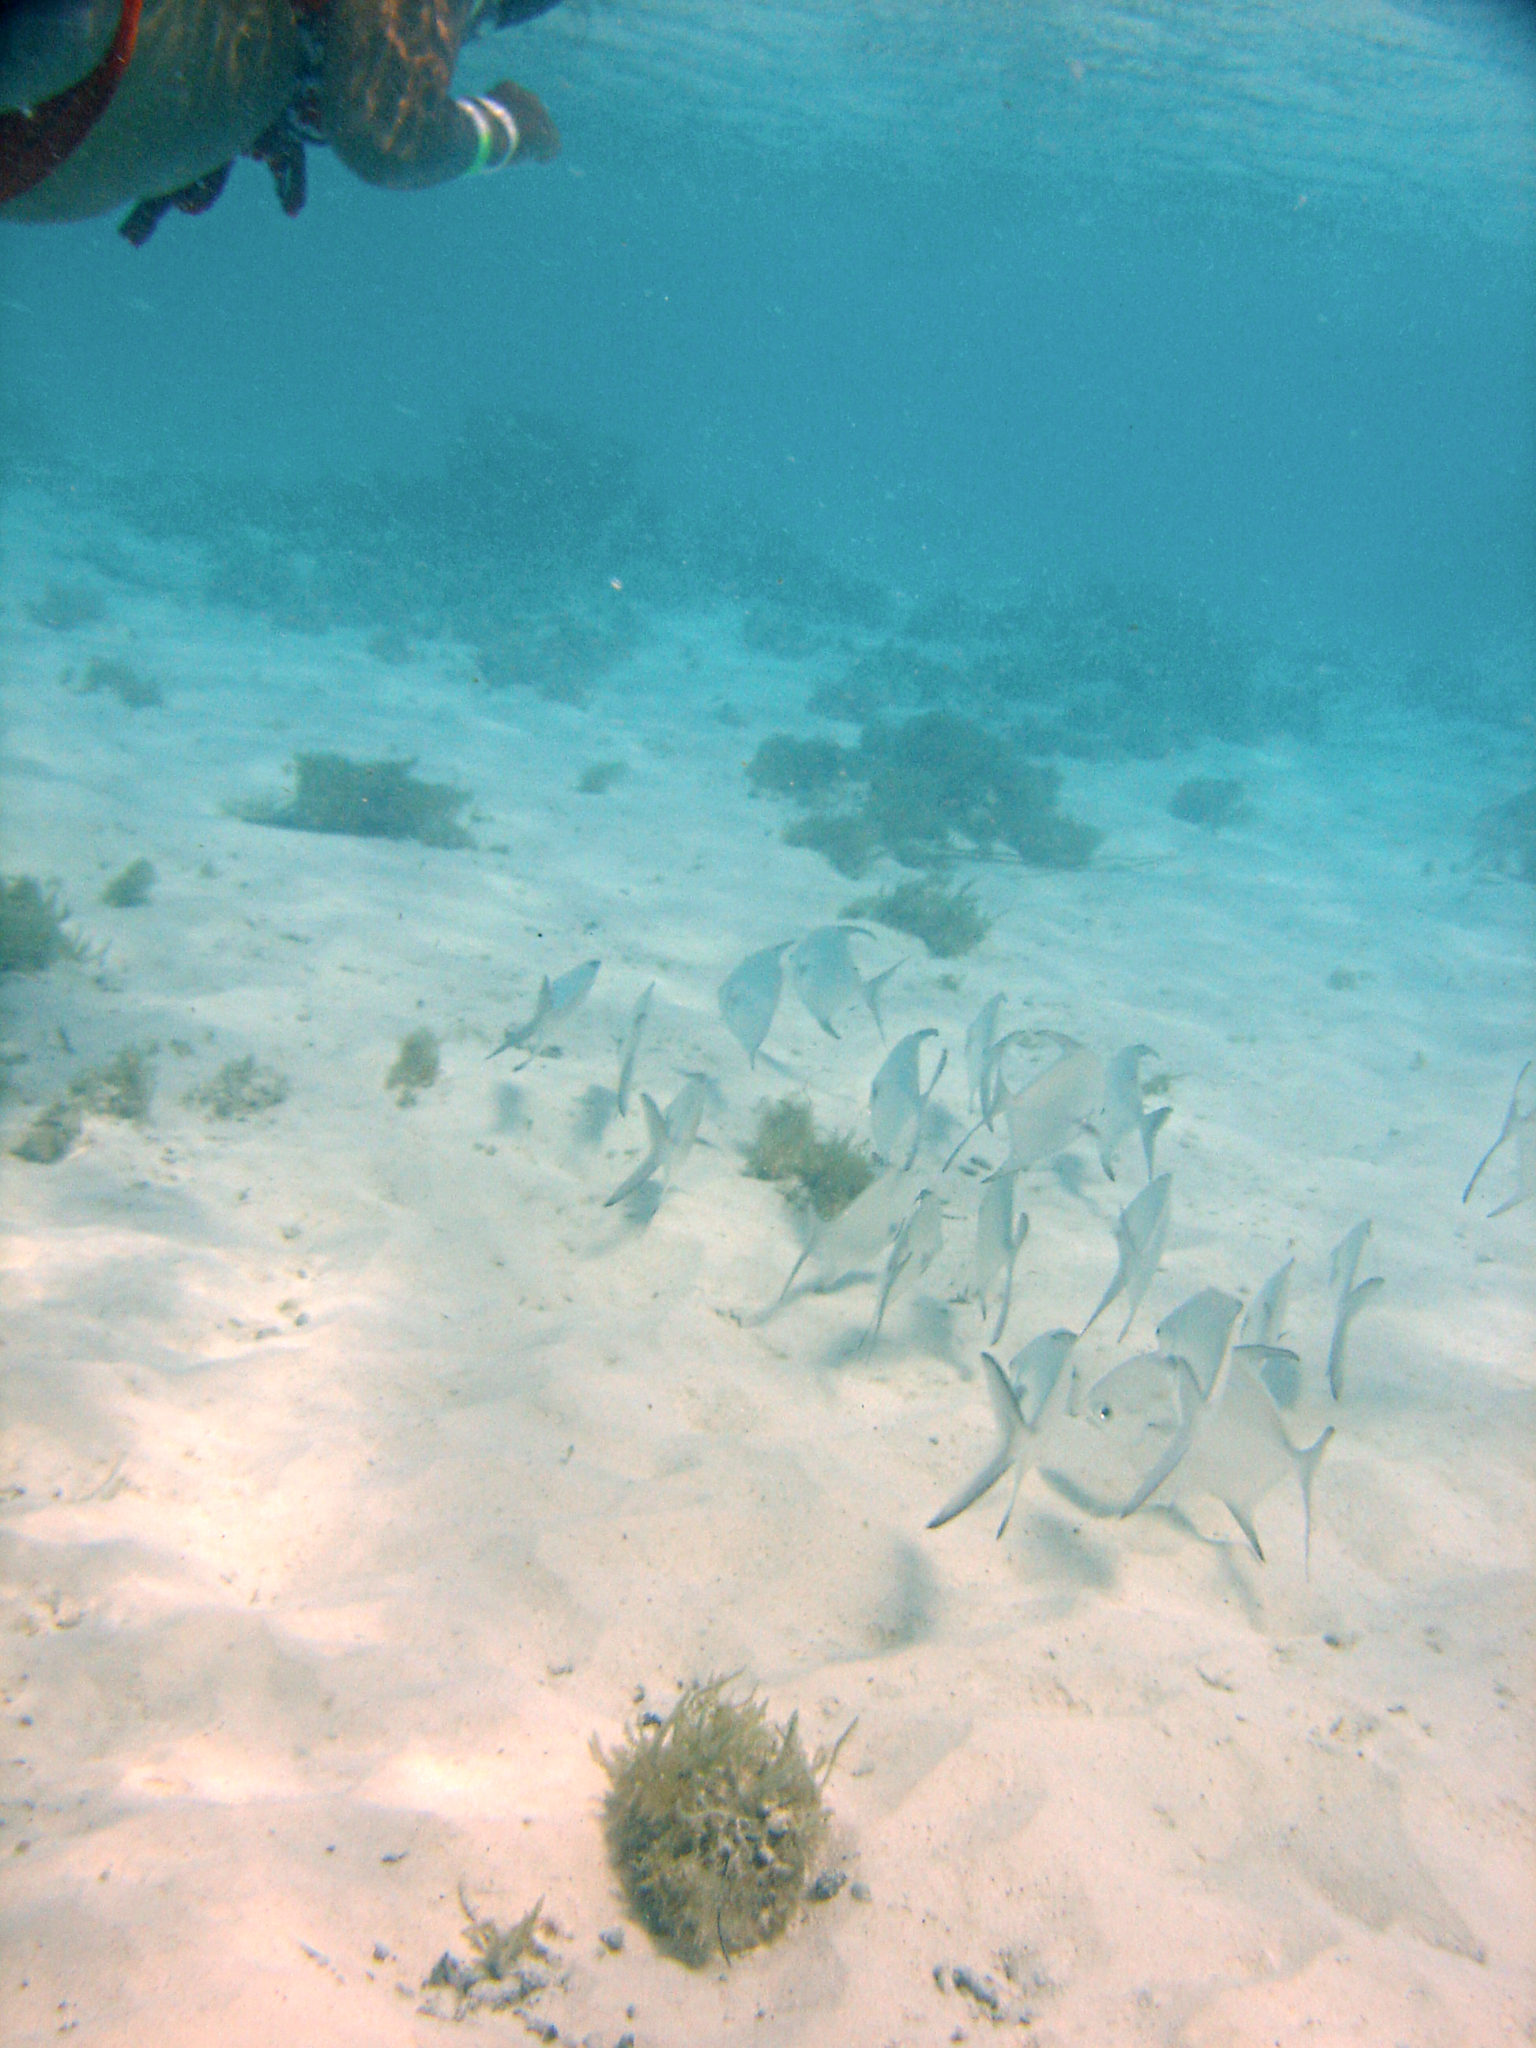 Republique_dominicaine_roadtrip_voyage_bahia_banc_poisson_snorkeling_hema